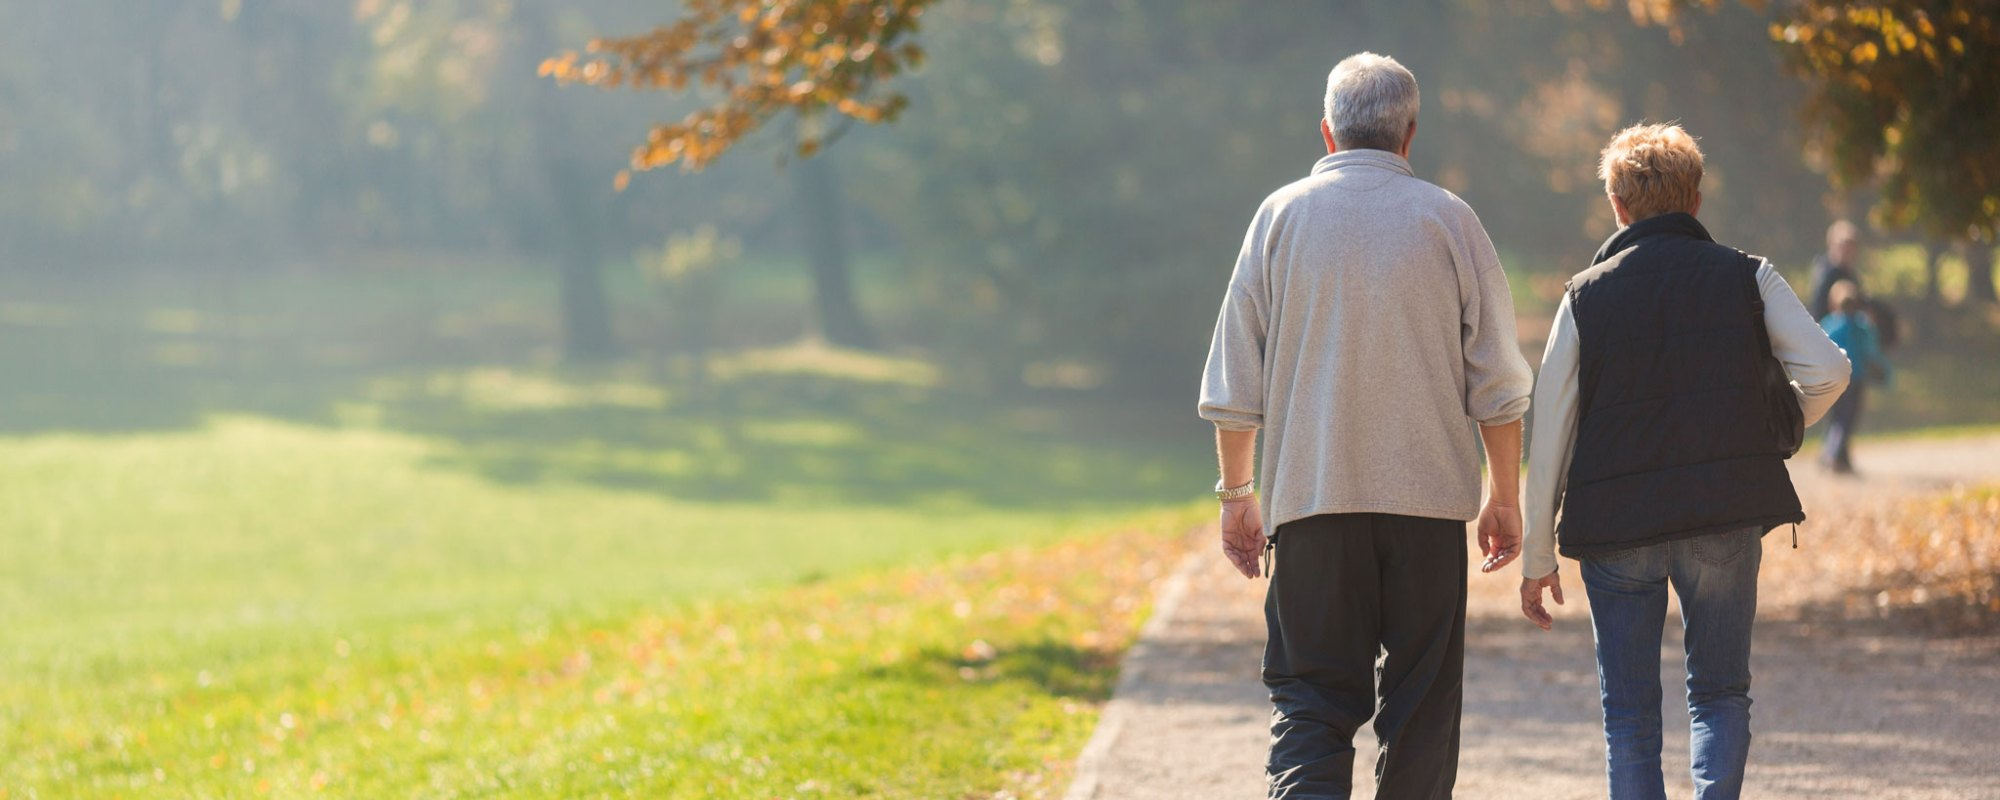 older adult couple walking through the park